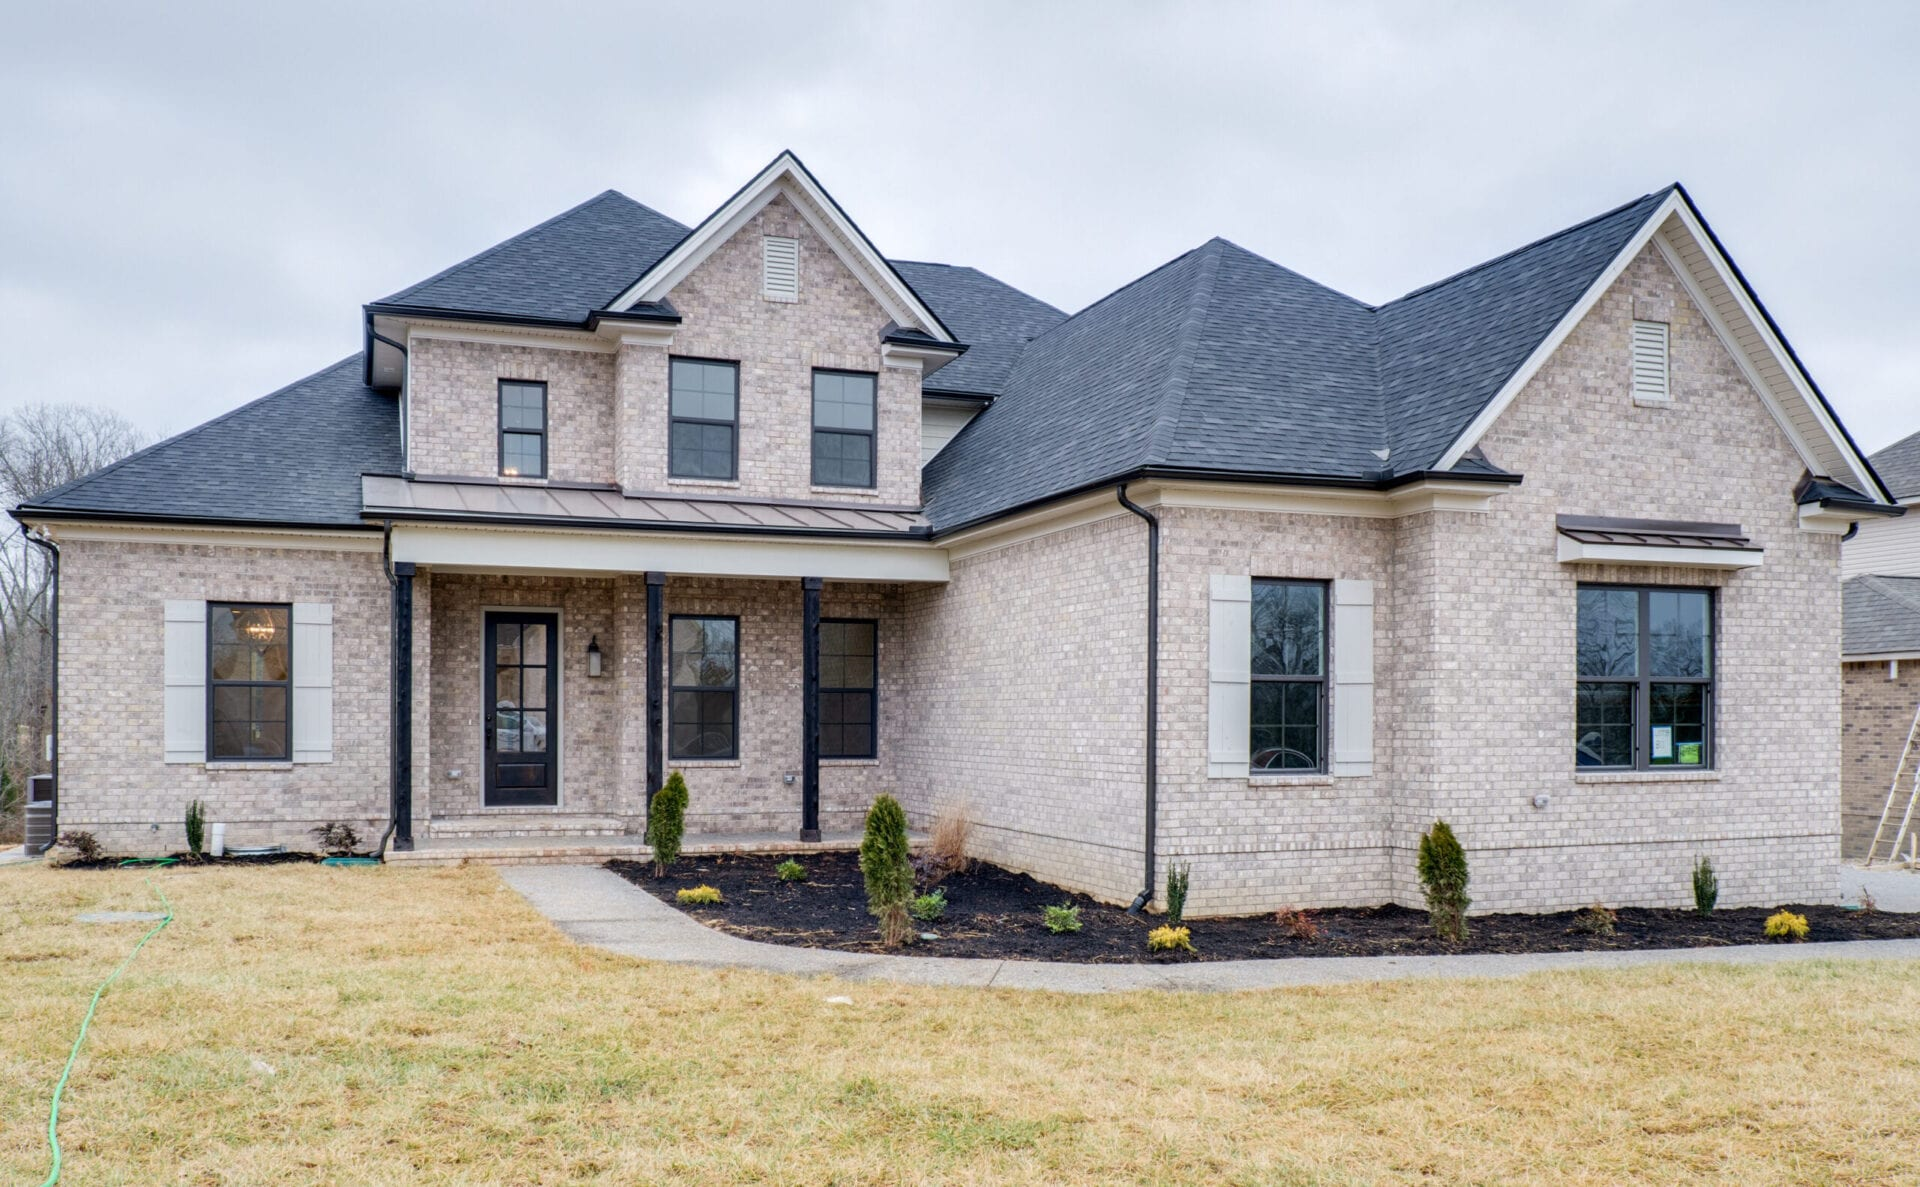 Home for Sale at Saddle Ridge! Located in Mt. Juliet, TN, this new home community offers a beautiful natural backdrop with beautifully designed homes to match.